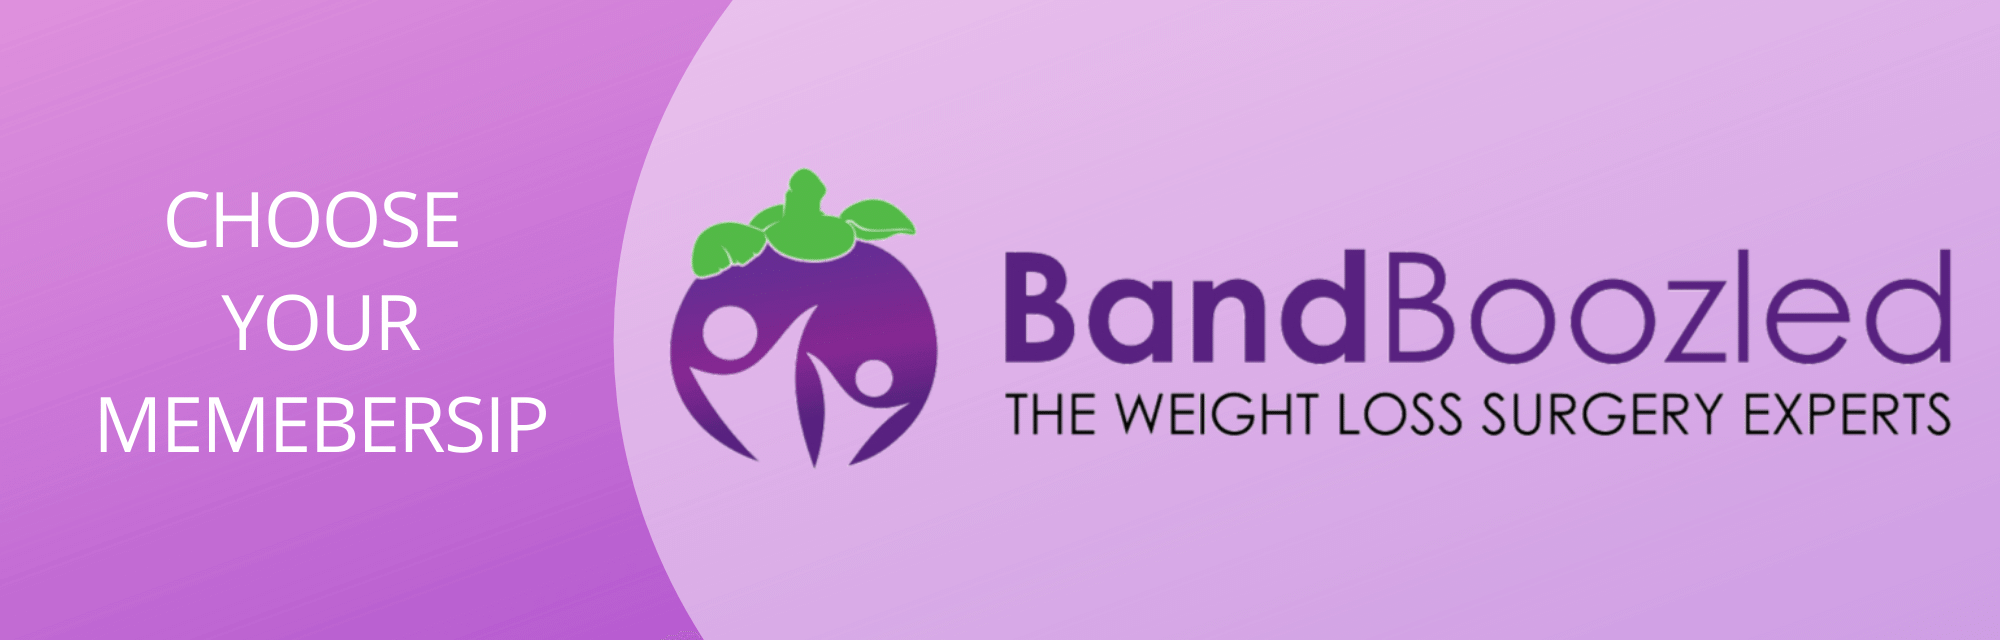 Bandboozled Weight Loss Surgery Support Free month Offer